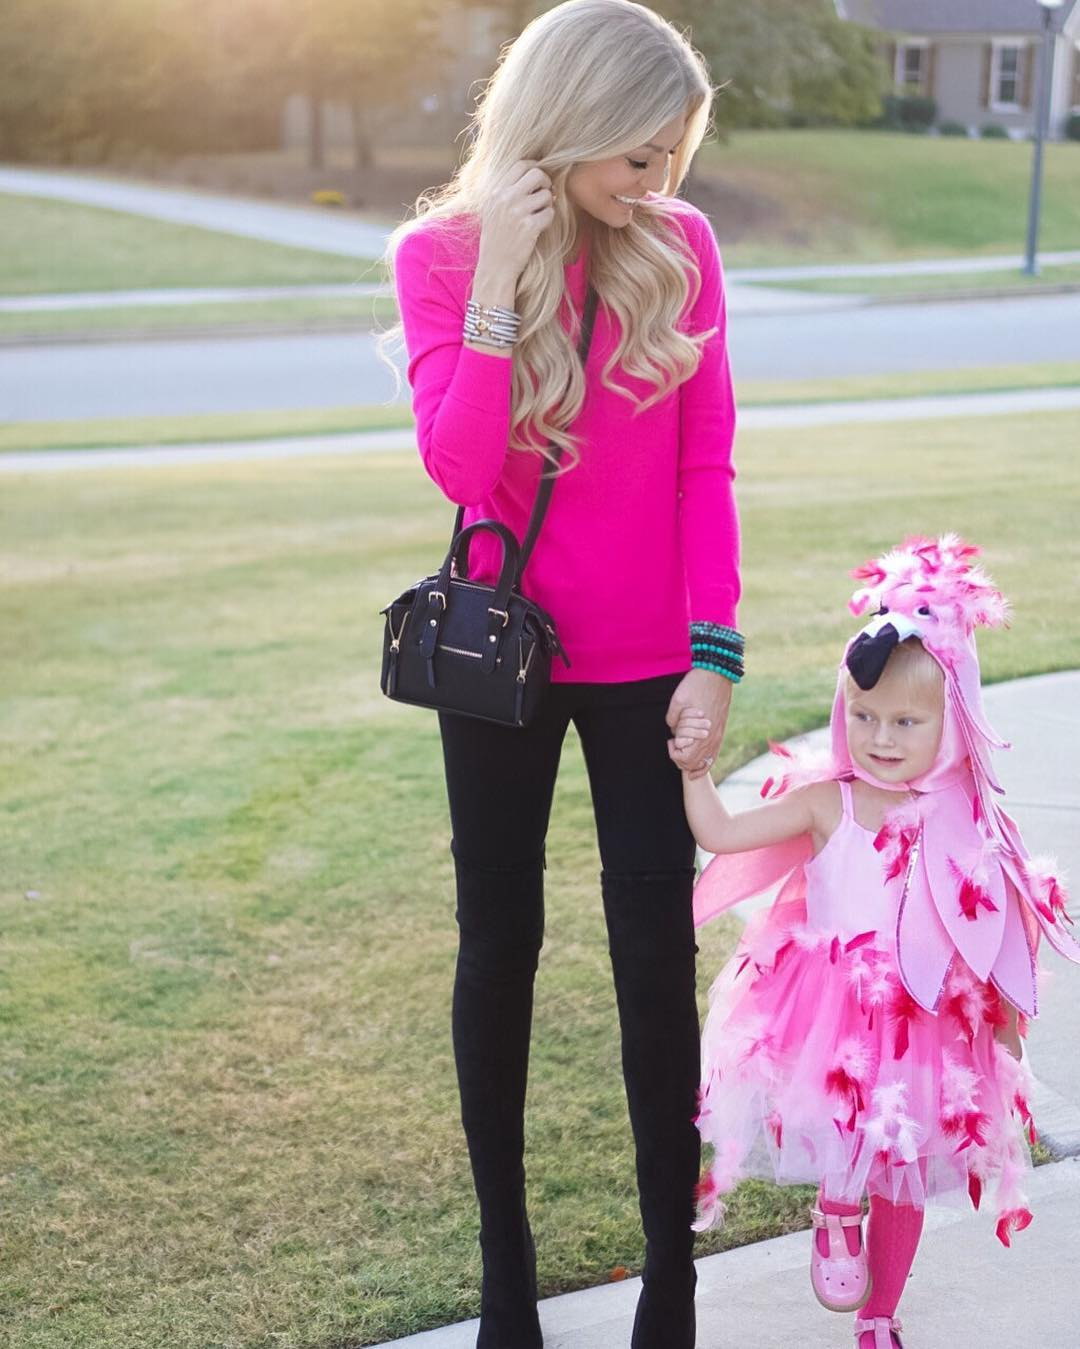 Happy Halloween! Perfect night trick-or-treating with this flamingo gal!! http://liketk.it/2pv9w #halloween #momlife #lifewithblove #ootd #wiw #welovepink